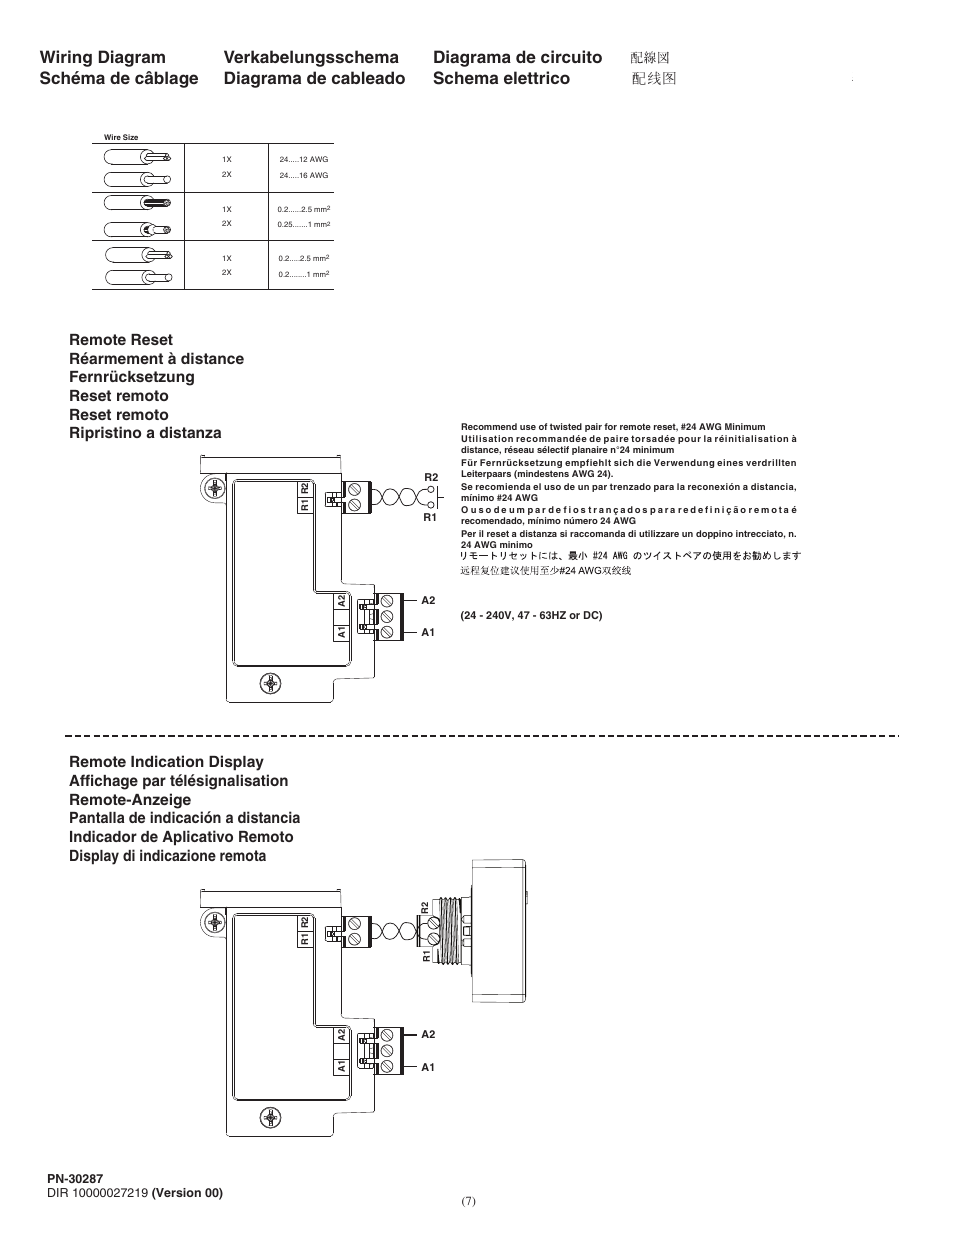 Wiring Diagram Rockwell Automation 193 Err E1 Plus Remote Reset Accessory Module User Manual